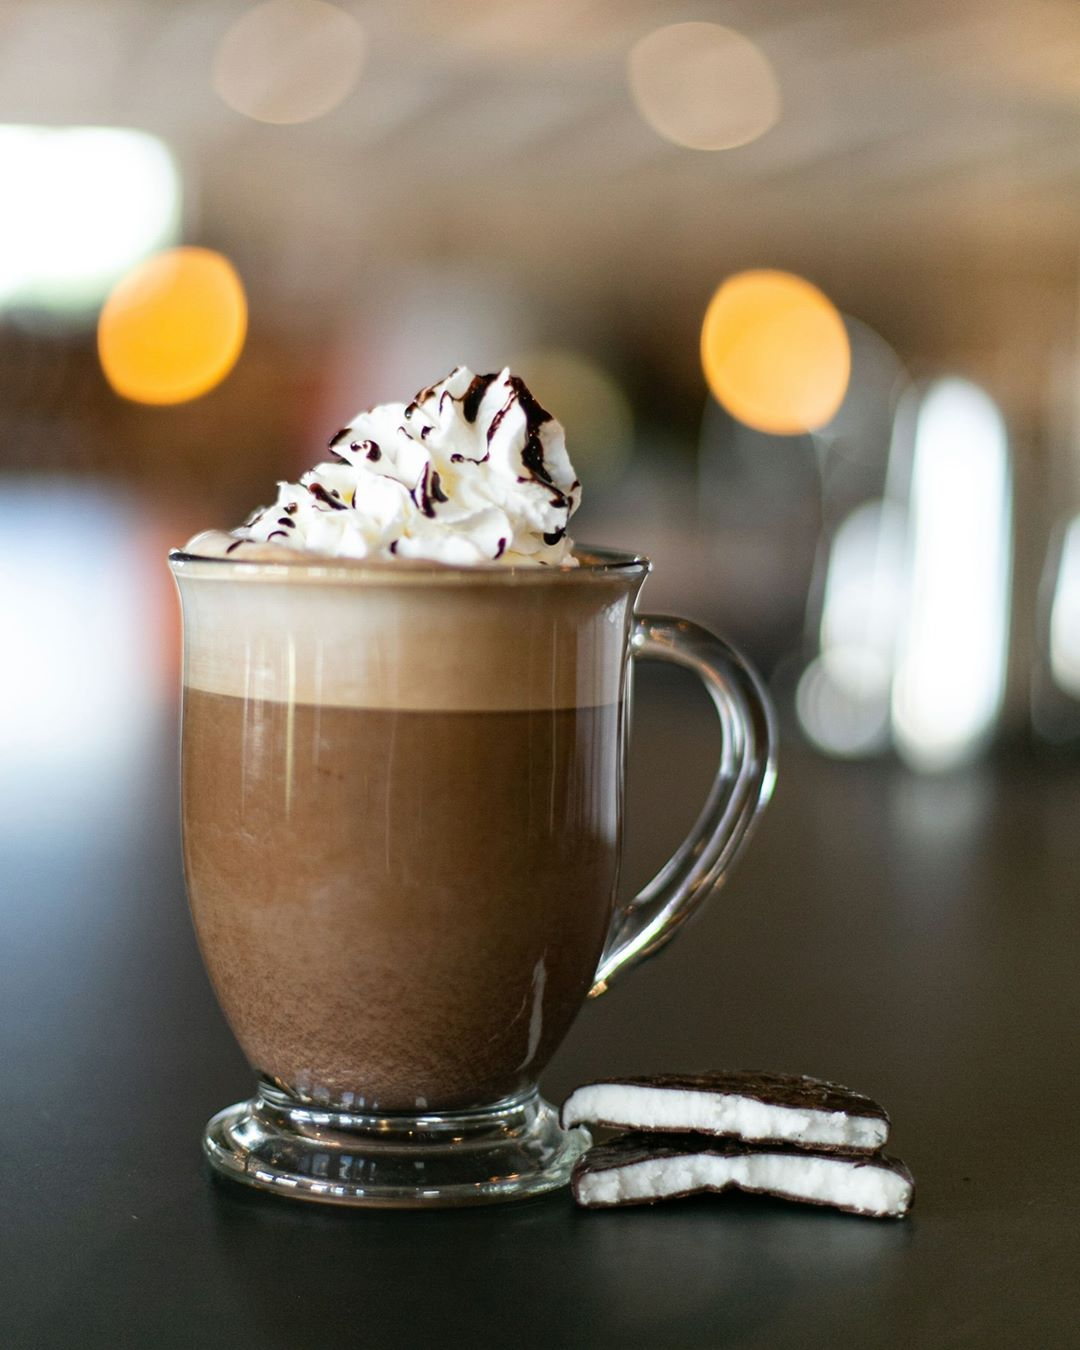 LBI ENTER SEPTEMBER LATTE SPECIAL: the peppermint patty mocha. A cool, refreshing bl…